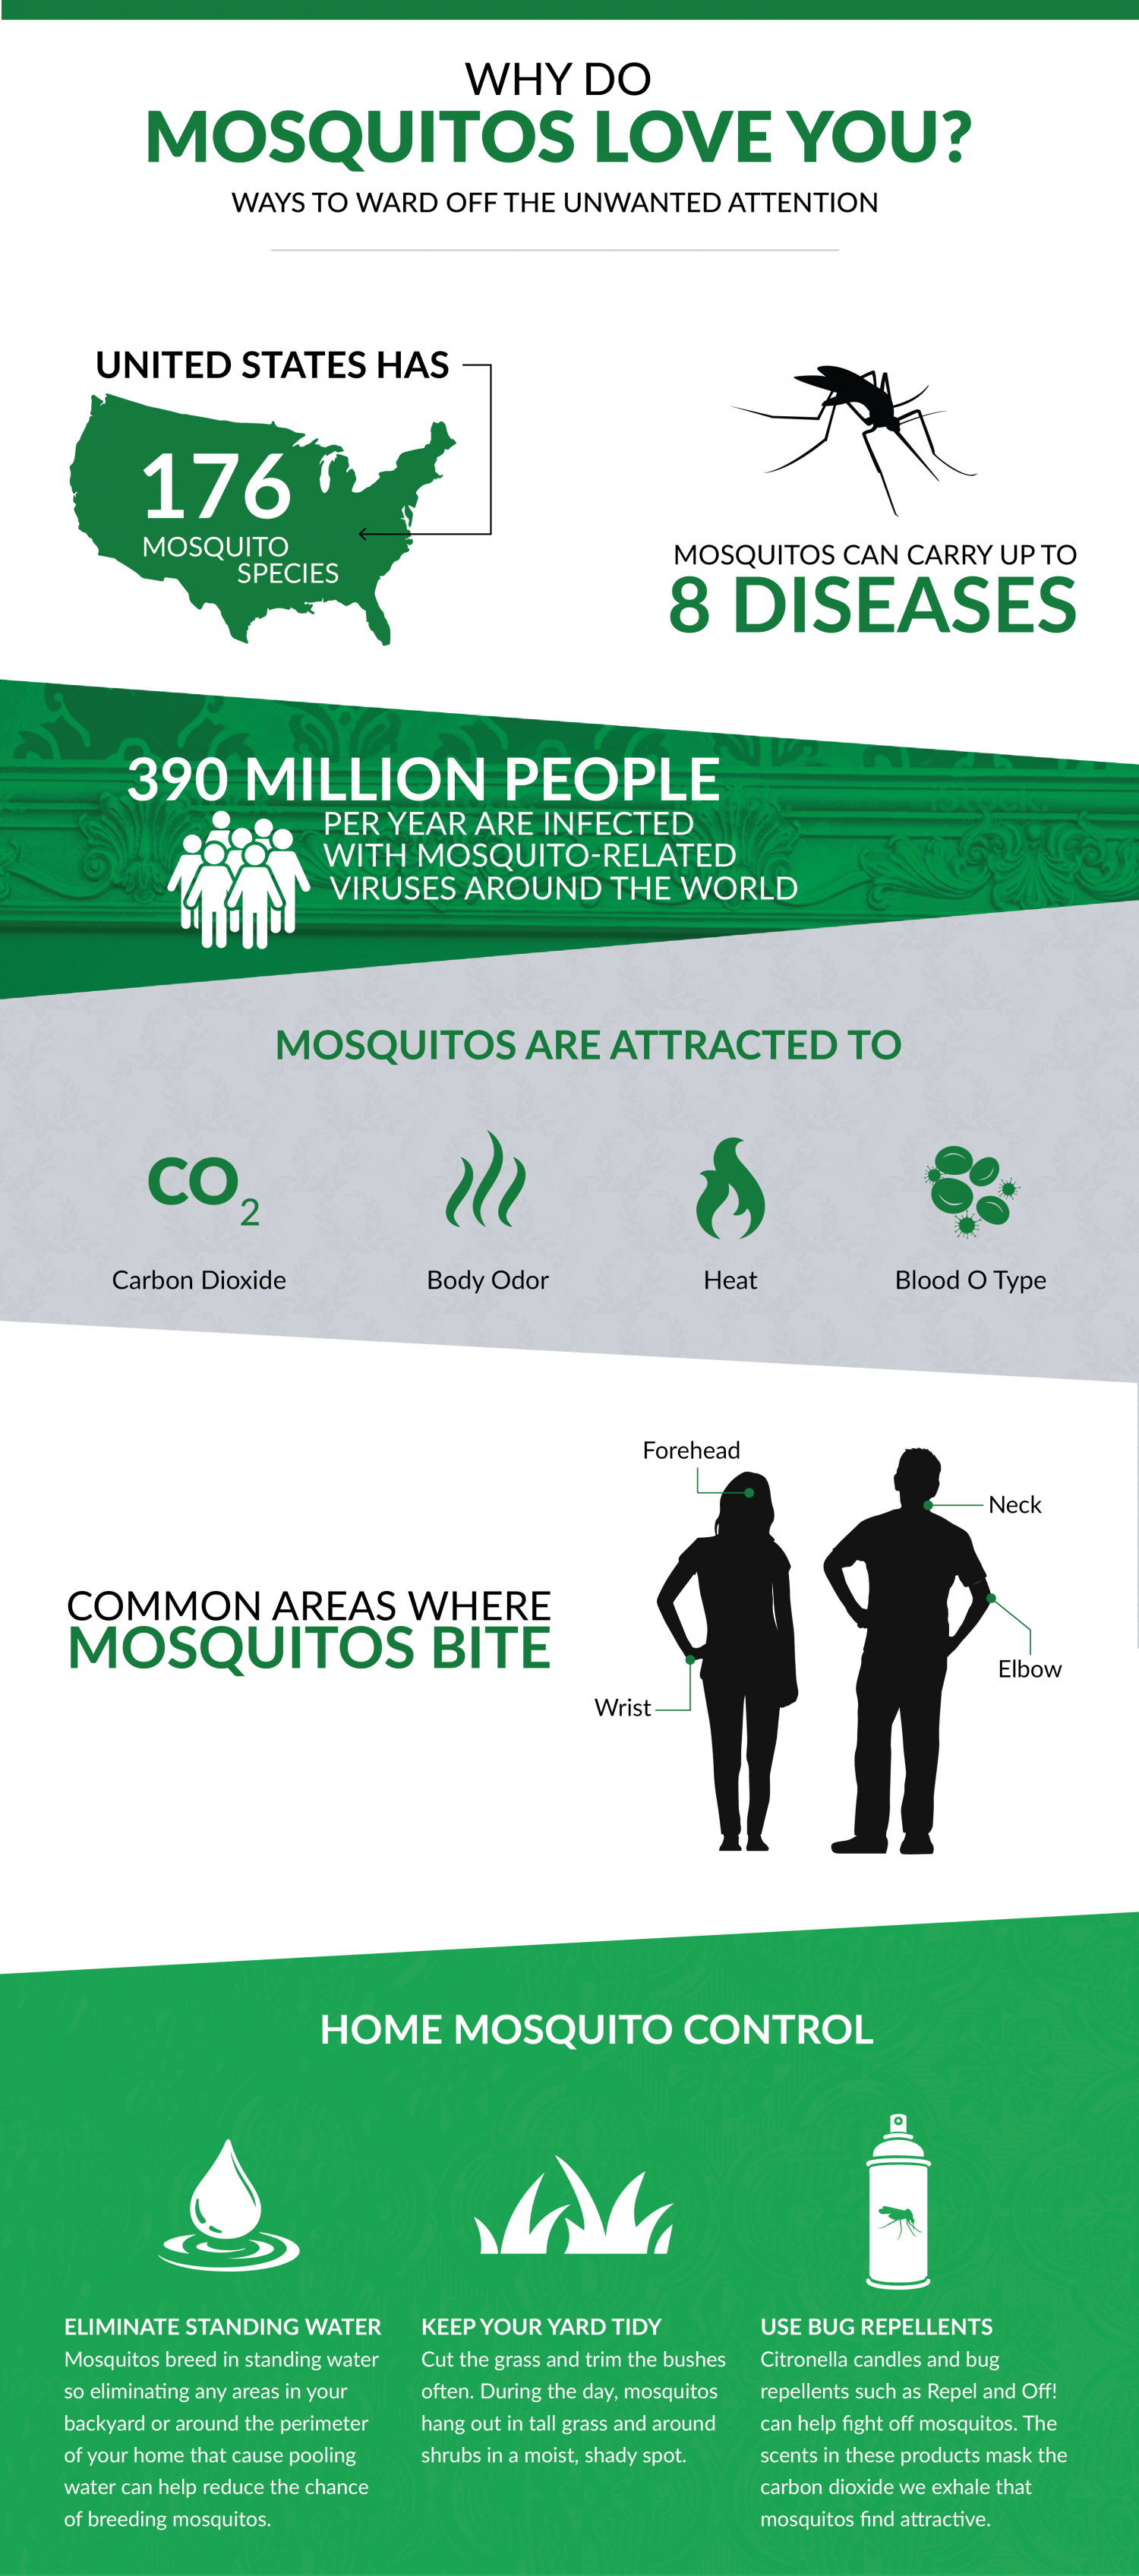 Why Do Mosquitoes Love You? Infographic